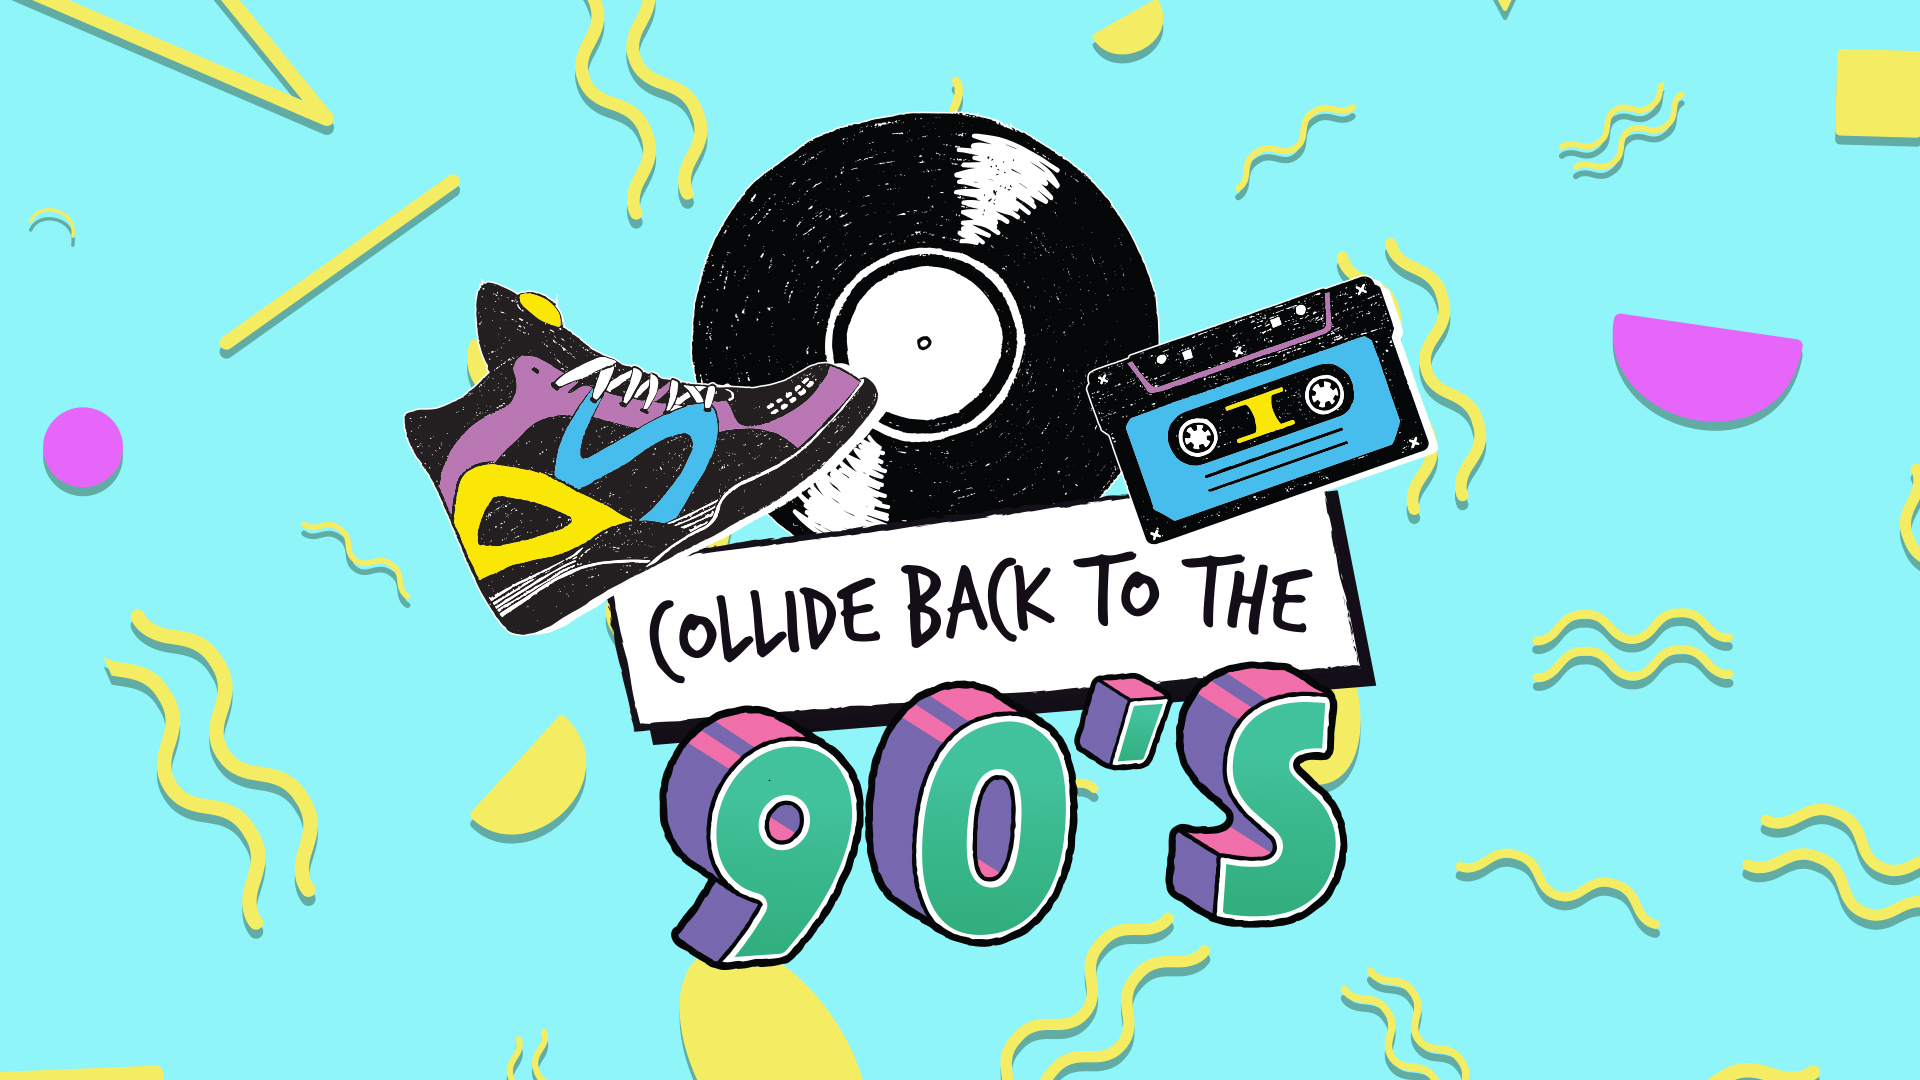 Back To The 90s - 1920x1080